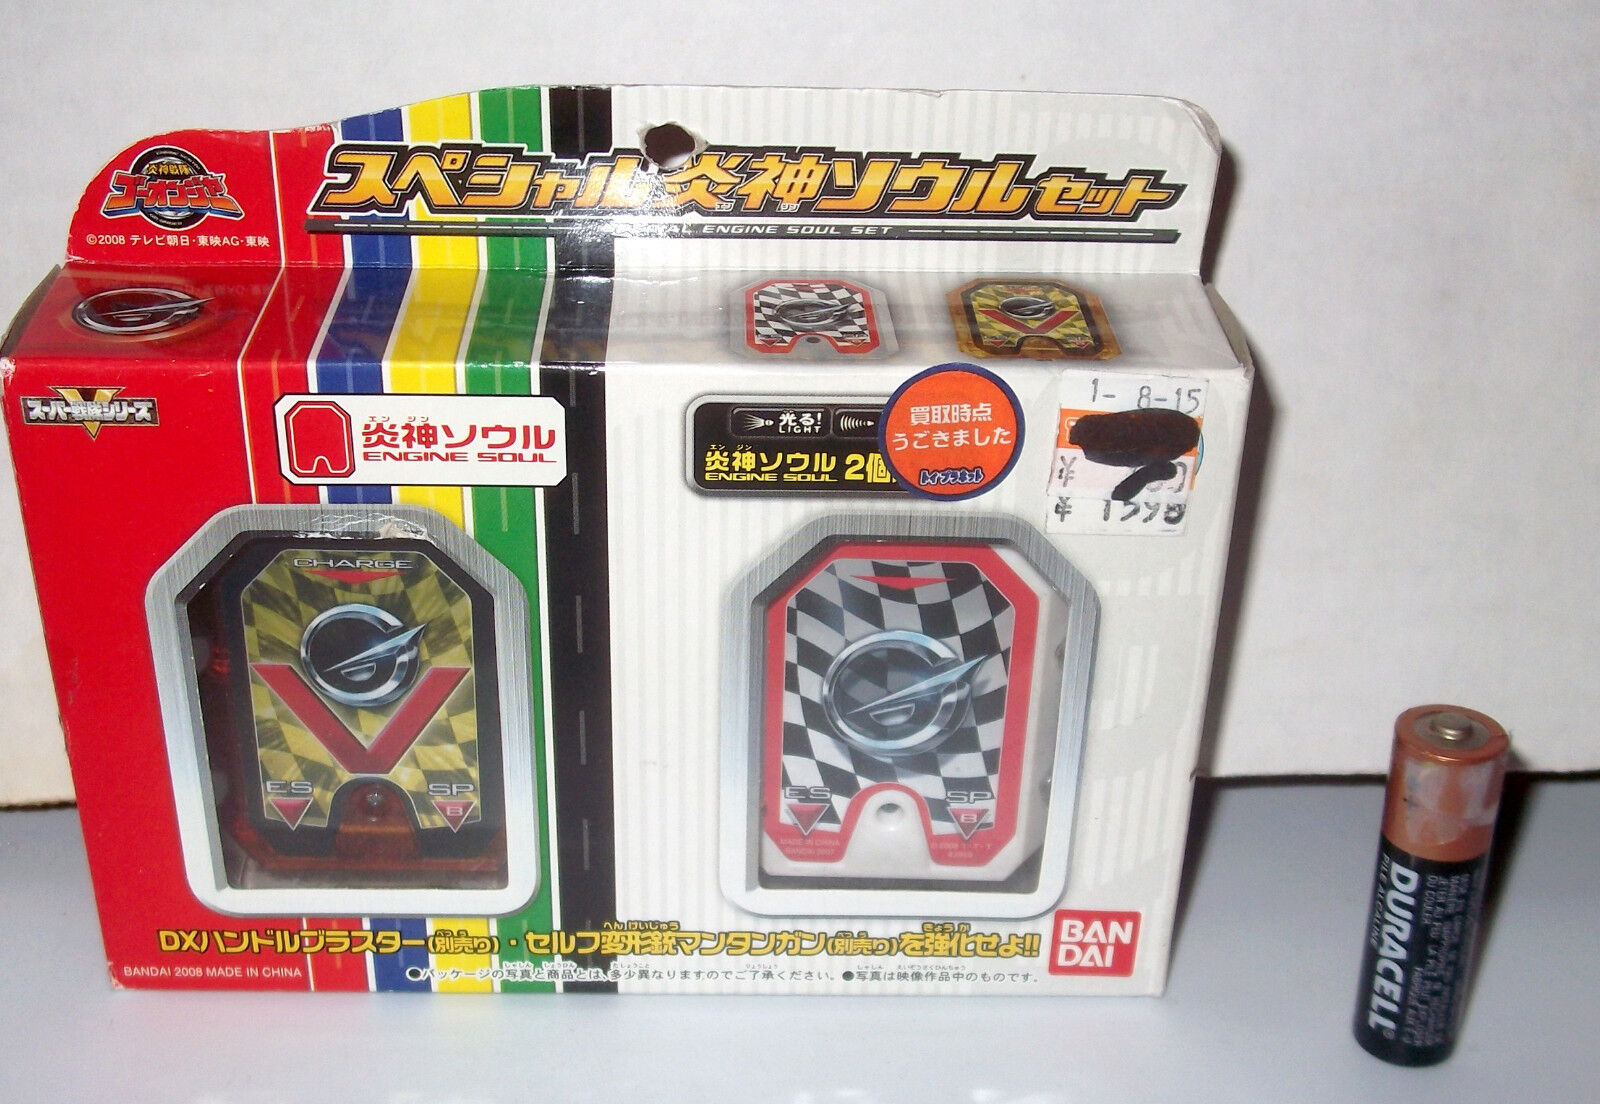 Power Rangers GO-ONGER DX Special ENGINE SOUL SET overdrive in box - RPM JAPAN